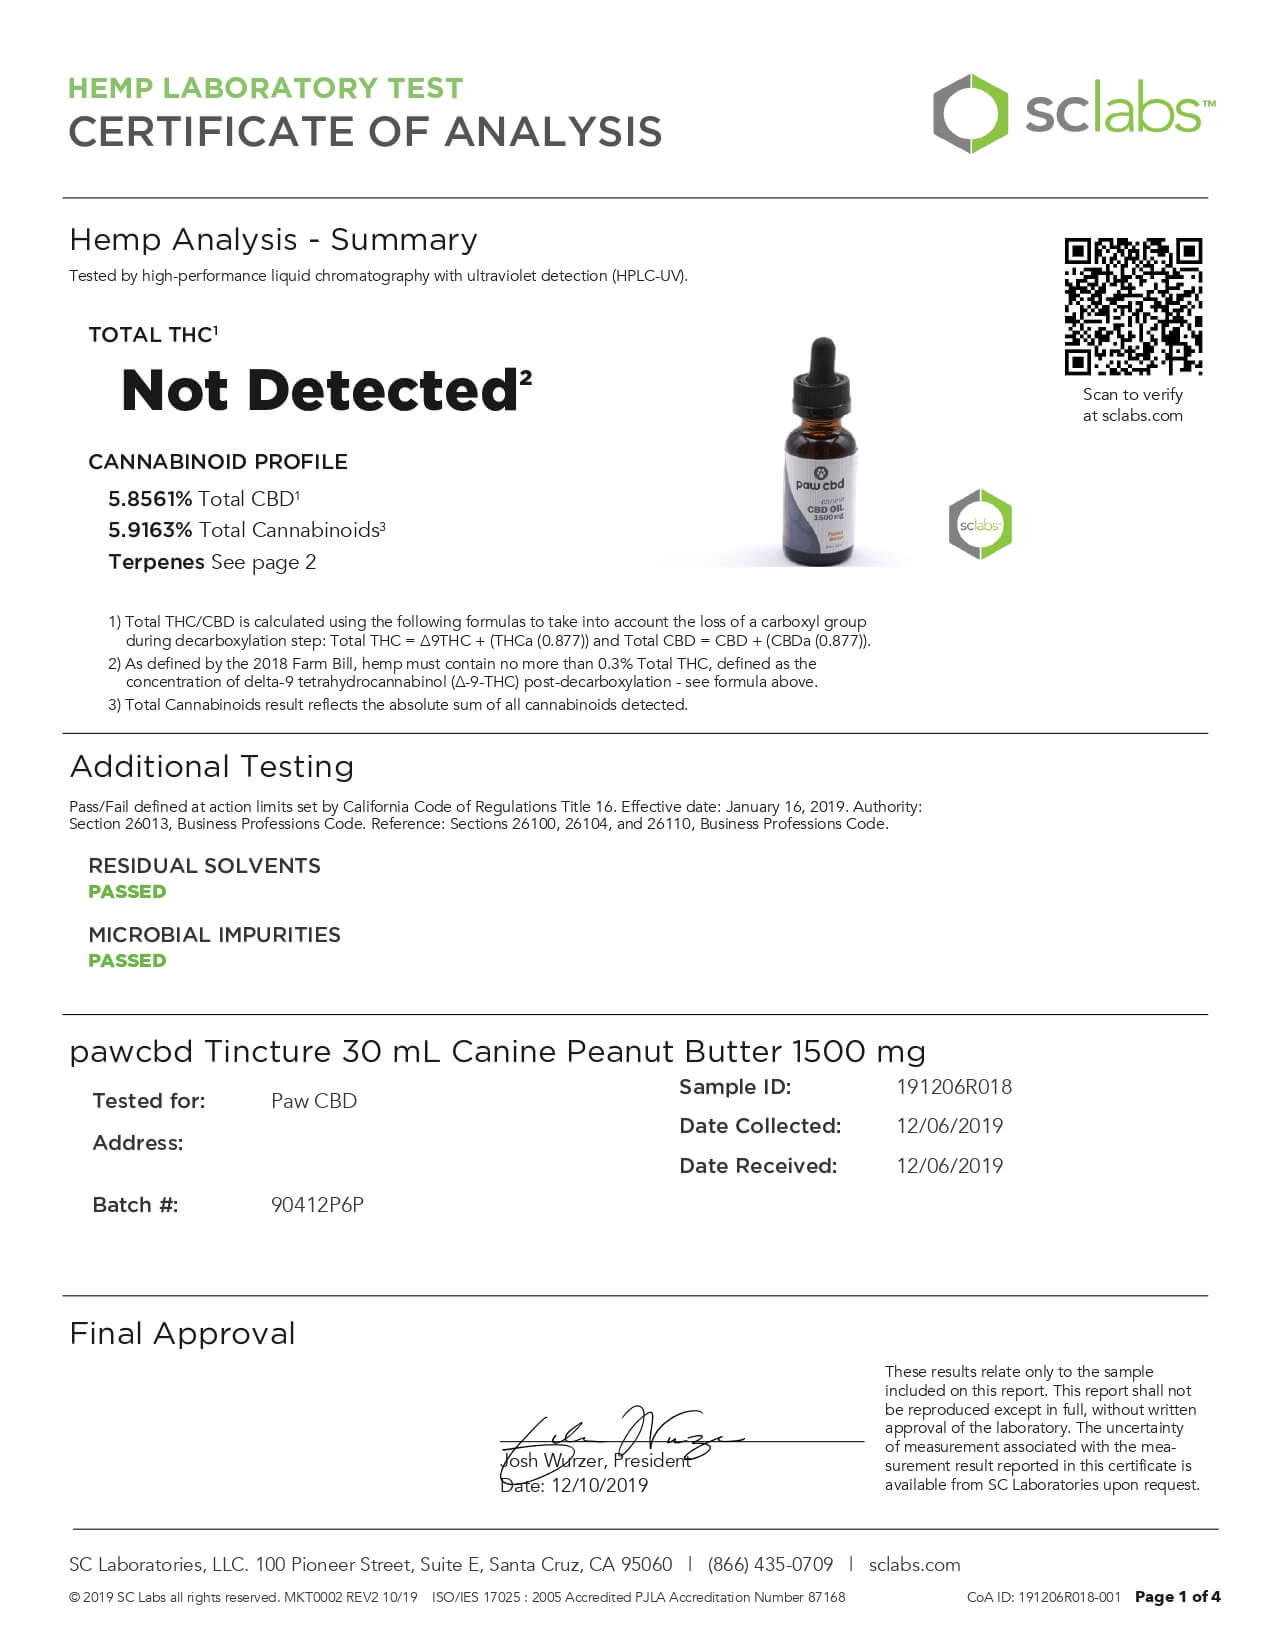 cbdMD CBD Pet Tincture Peanut Butter Flavored for Canines 1500mg Lab Report